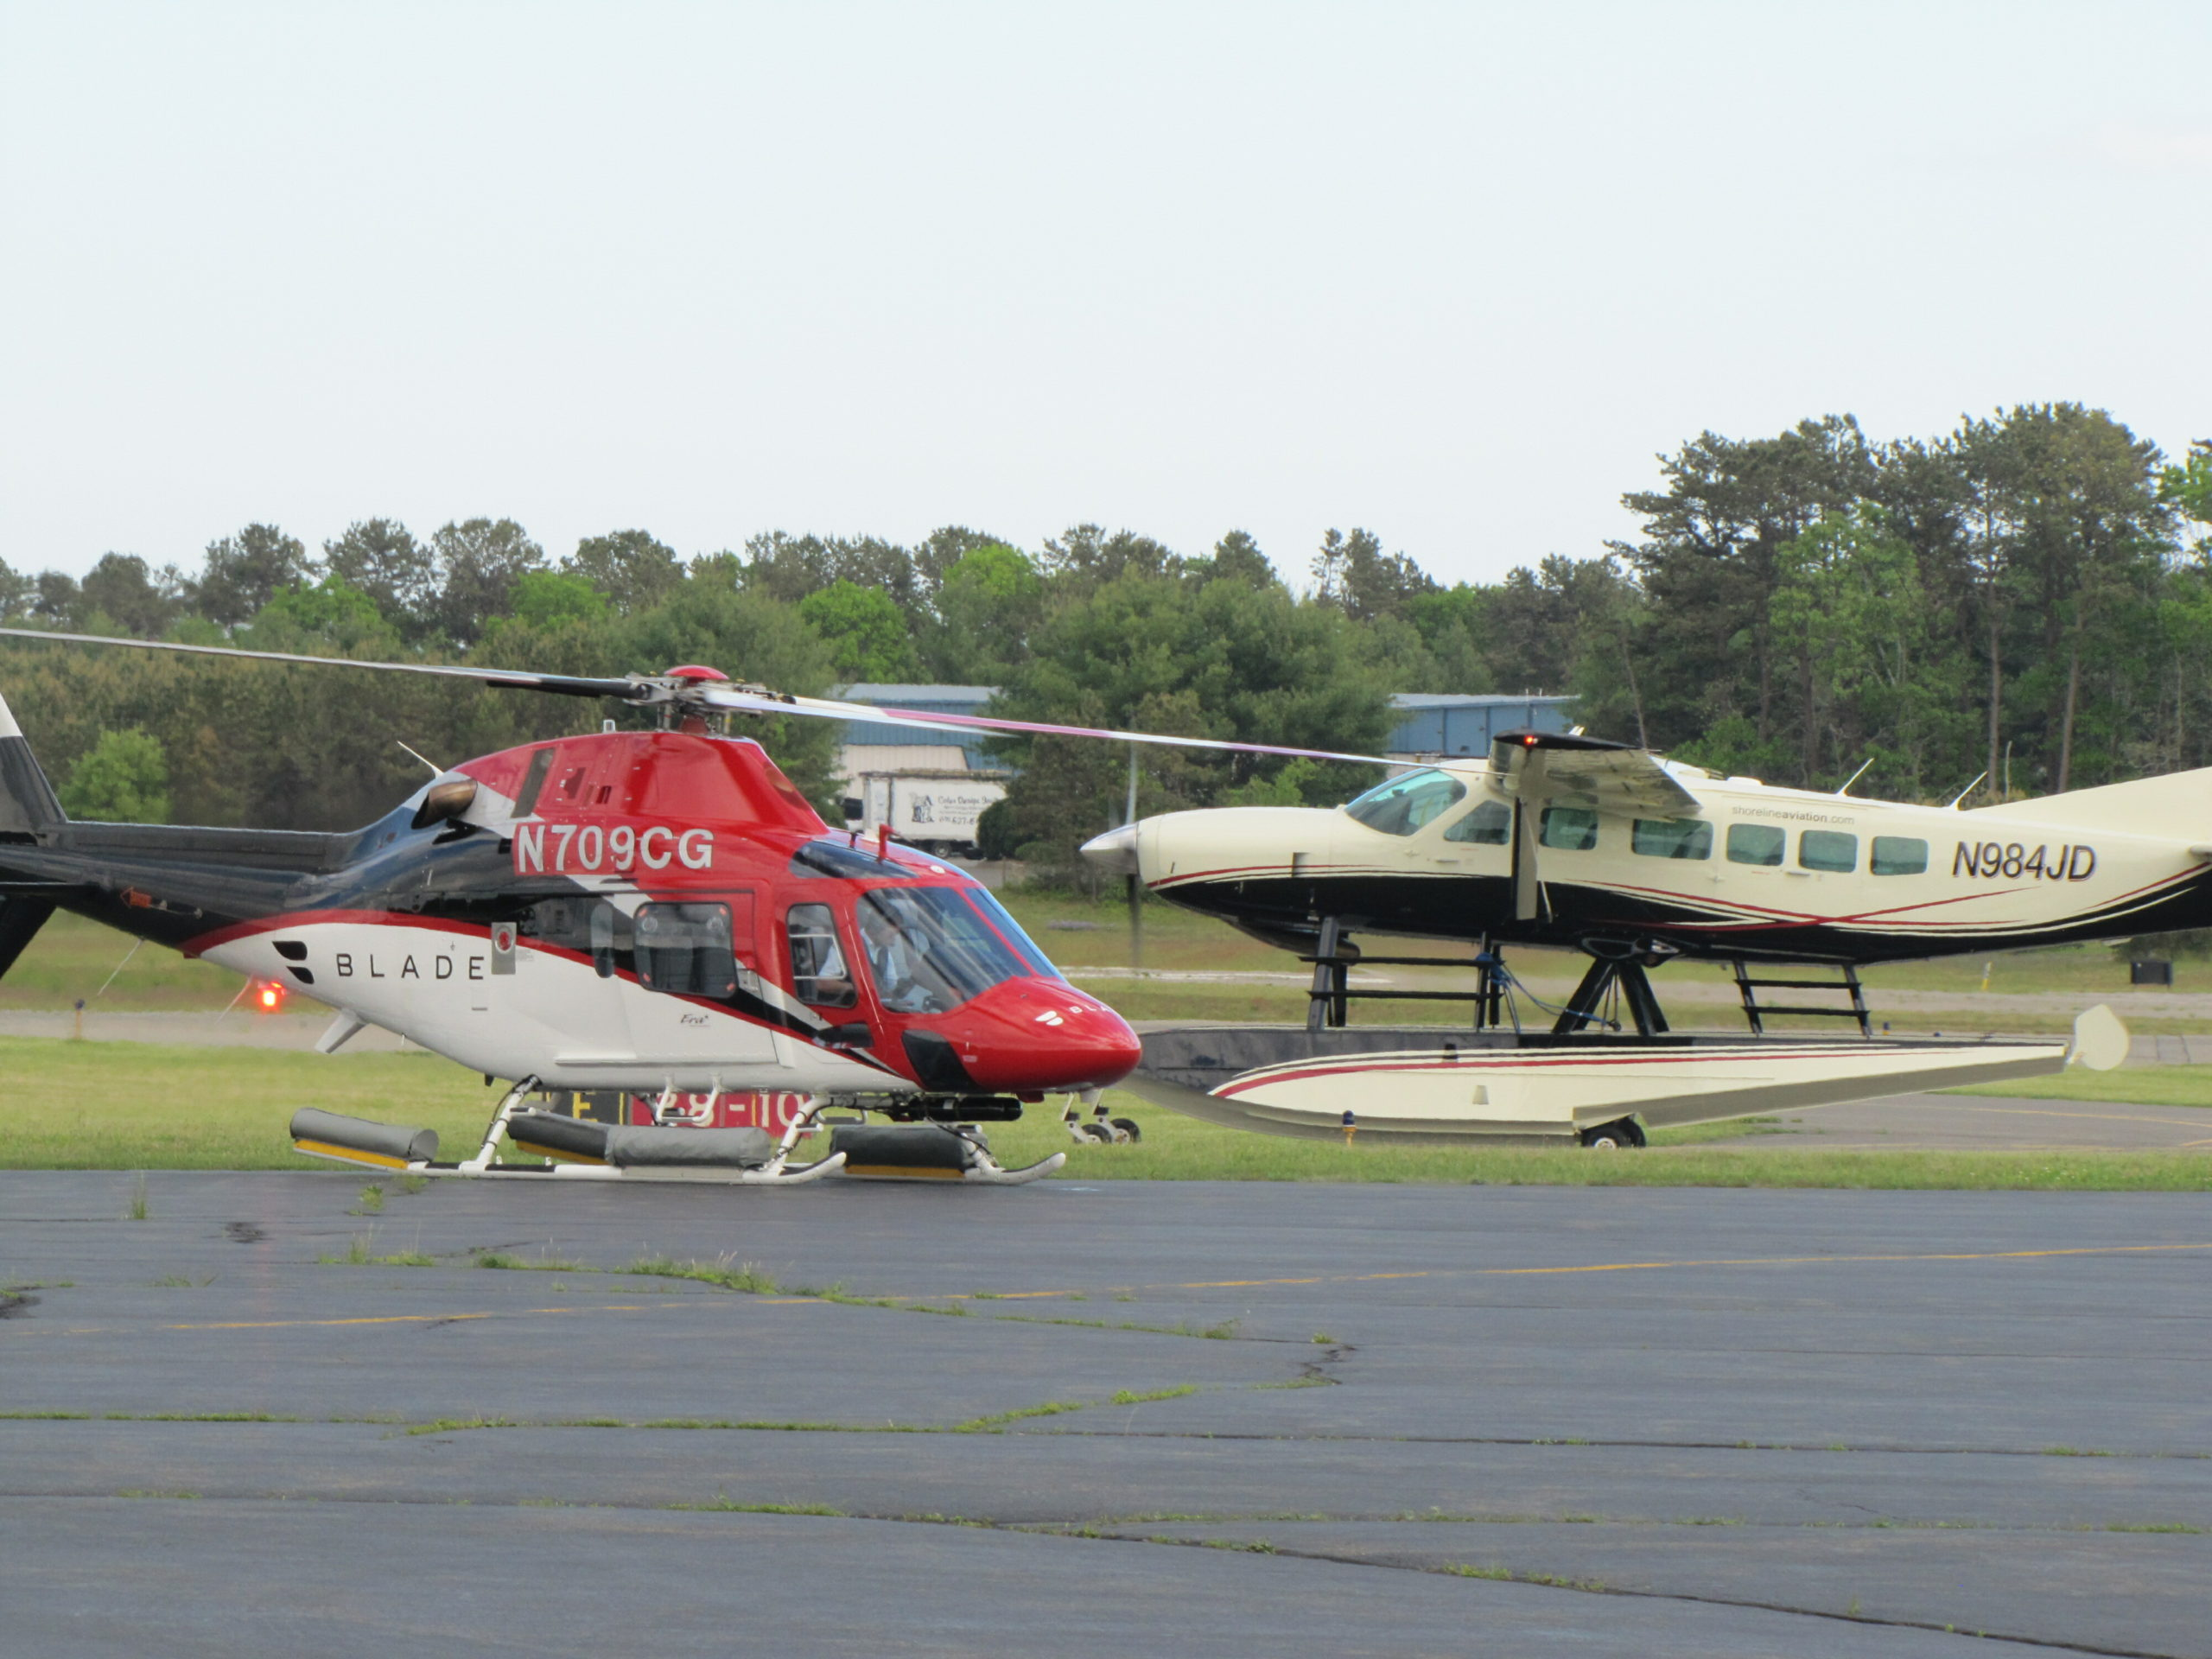 Helicopter traffic at East Hampton Airport was down 90 percent this past weekend and the commercial flight booking company Blade said it is shifting more of its Manhattan-to-East Hampton flights from helicopters to seaplanes, both in response to the coronavirus epidemic and for the long term to lessen noise impacts.